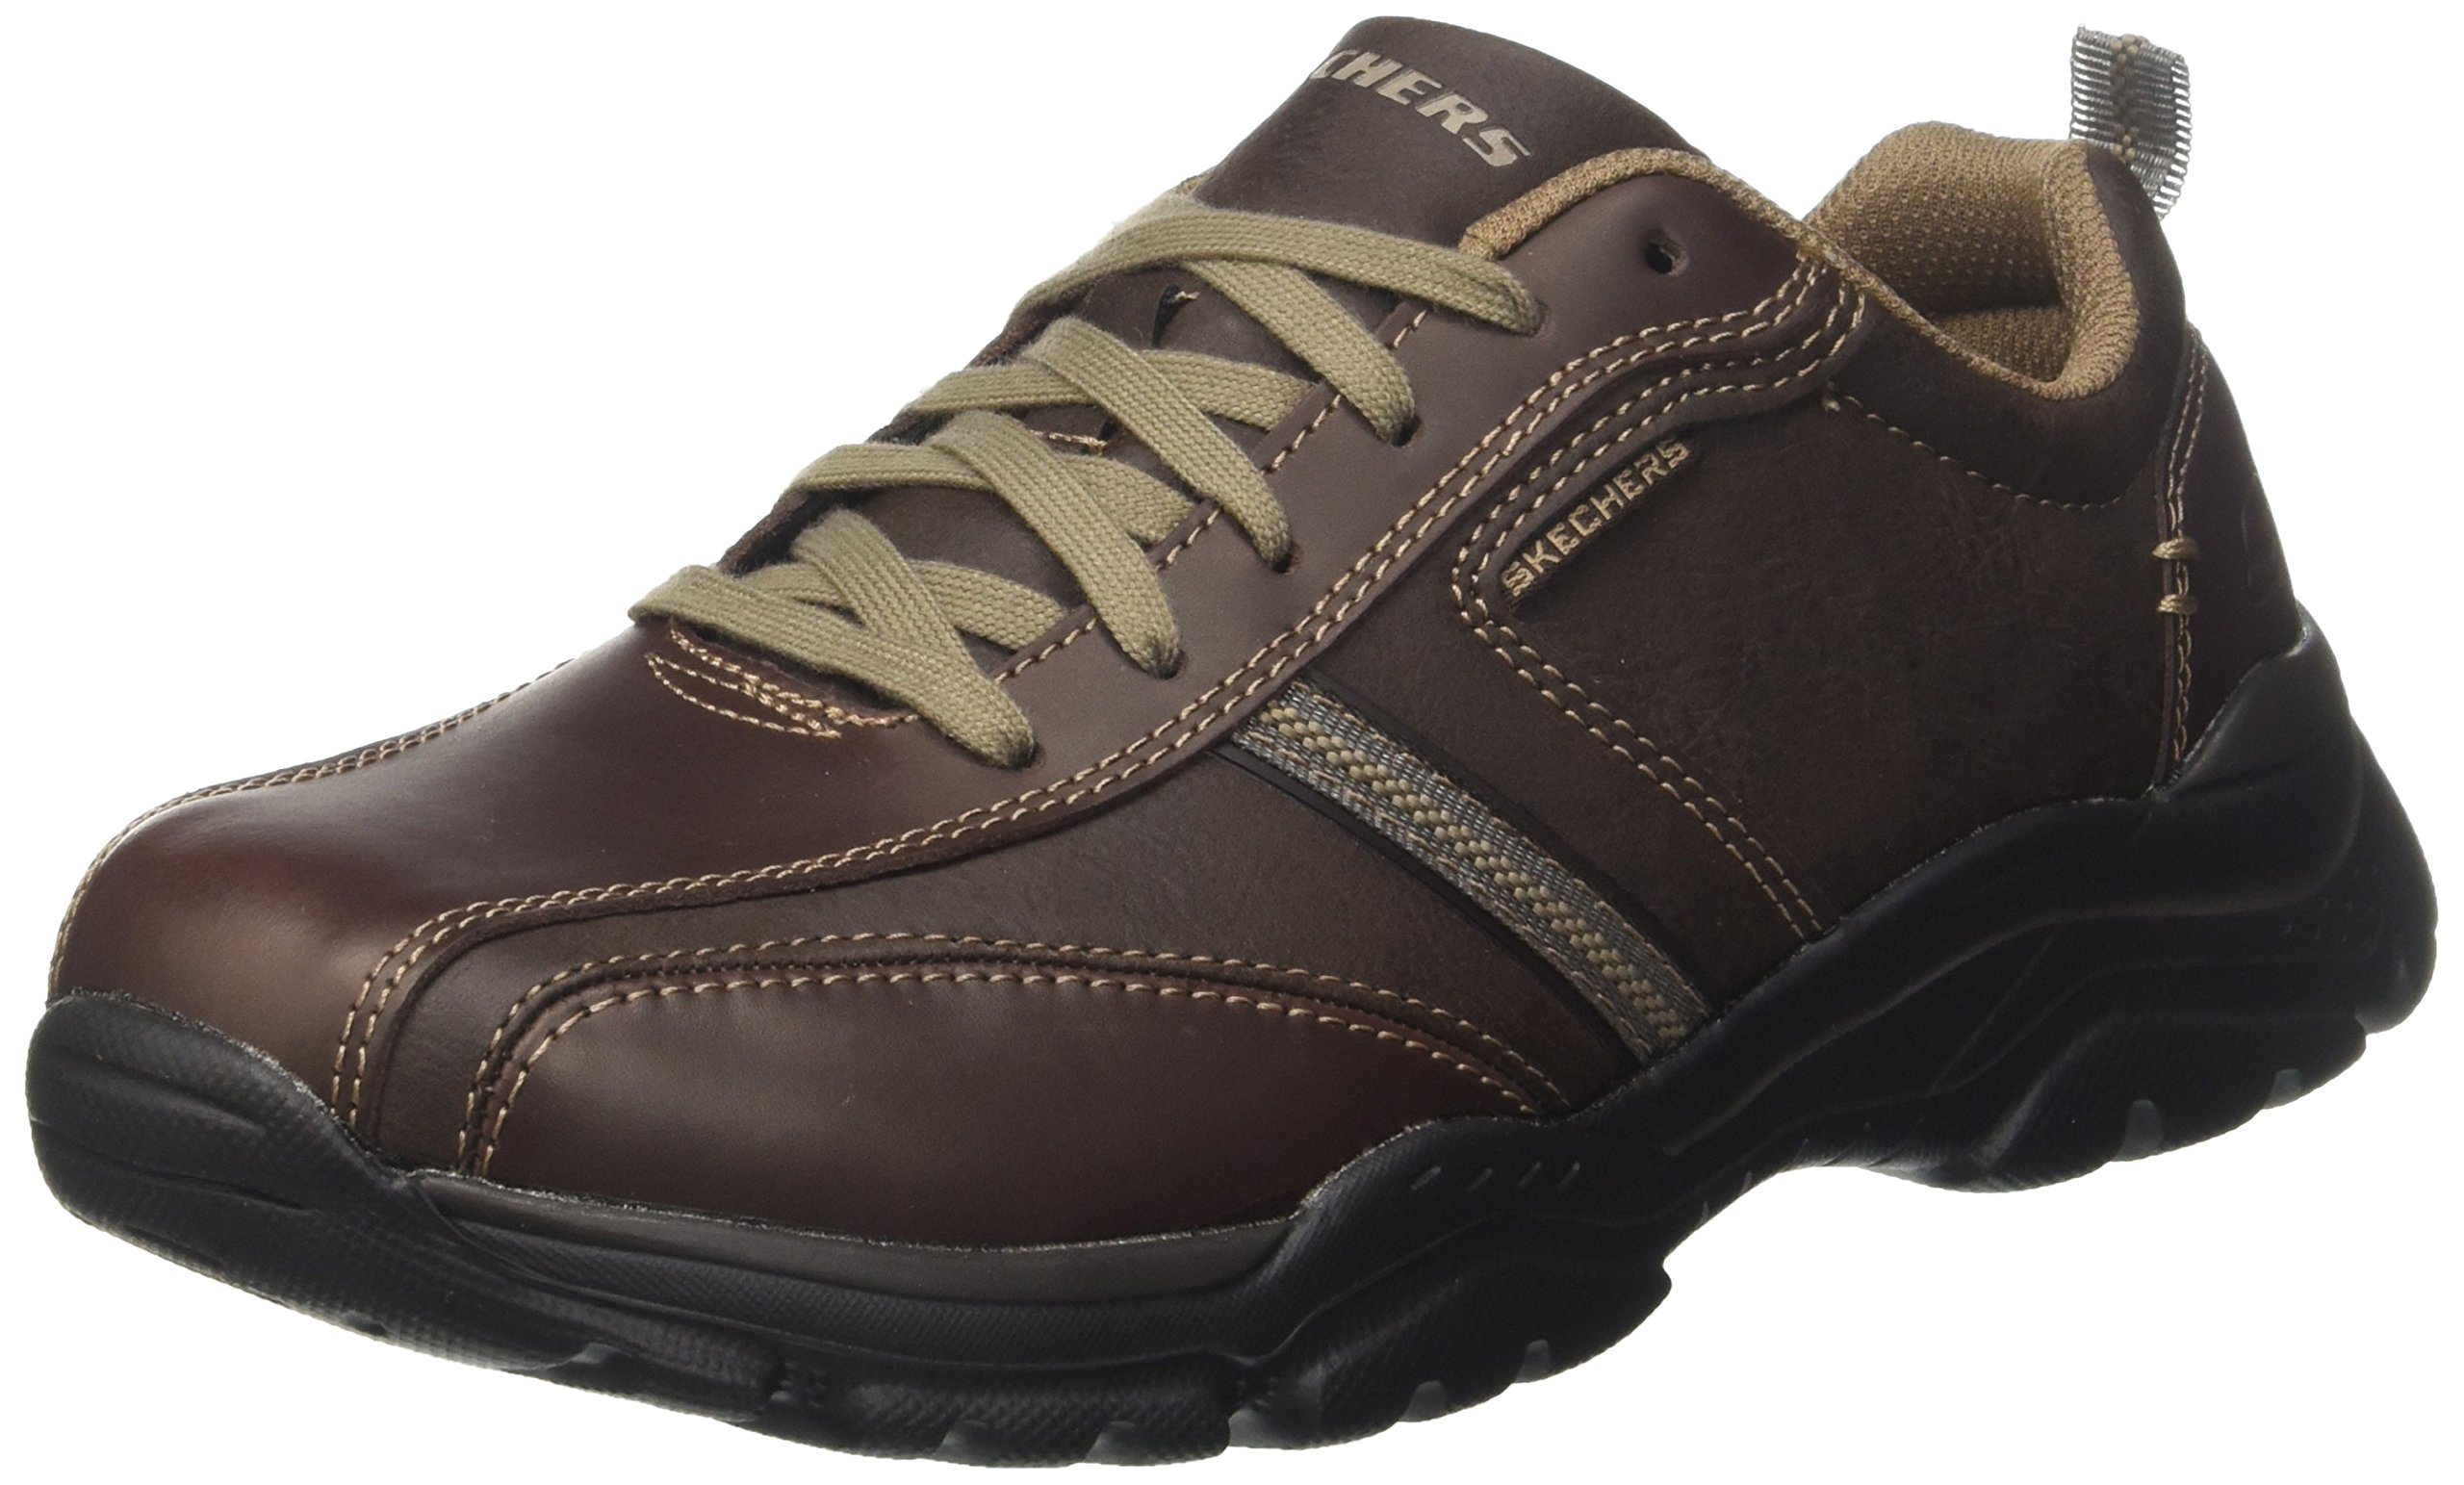 Skechers USA Men's Men's Relaxed Fit-Rovato-Larion Oxford,12 M US,Brown